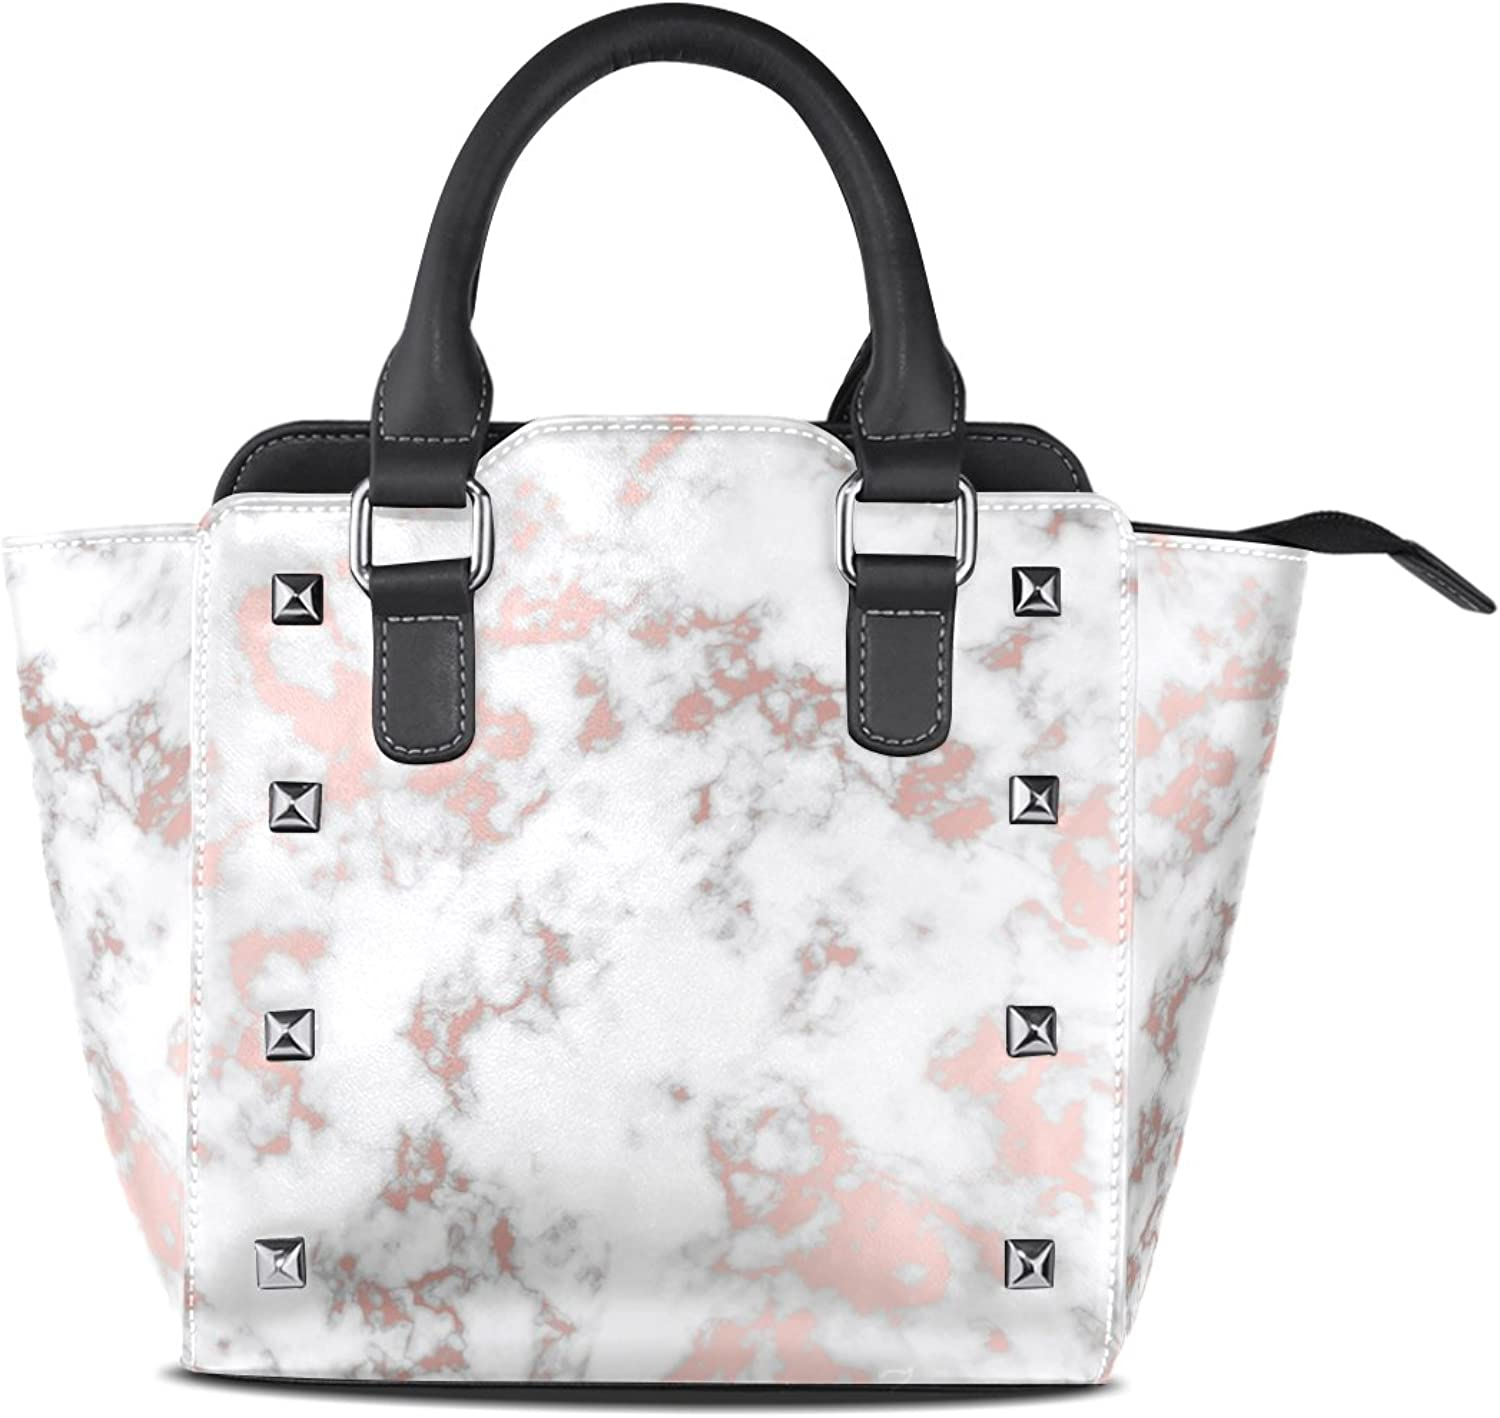 My Little Nest Women's Top Handle Satchel Handbag Amazing Marble Artwork Pattern Ladies PU Leather Shoulder Bag Crossbody Bag